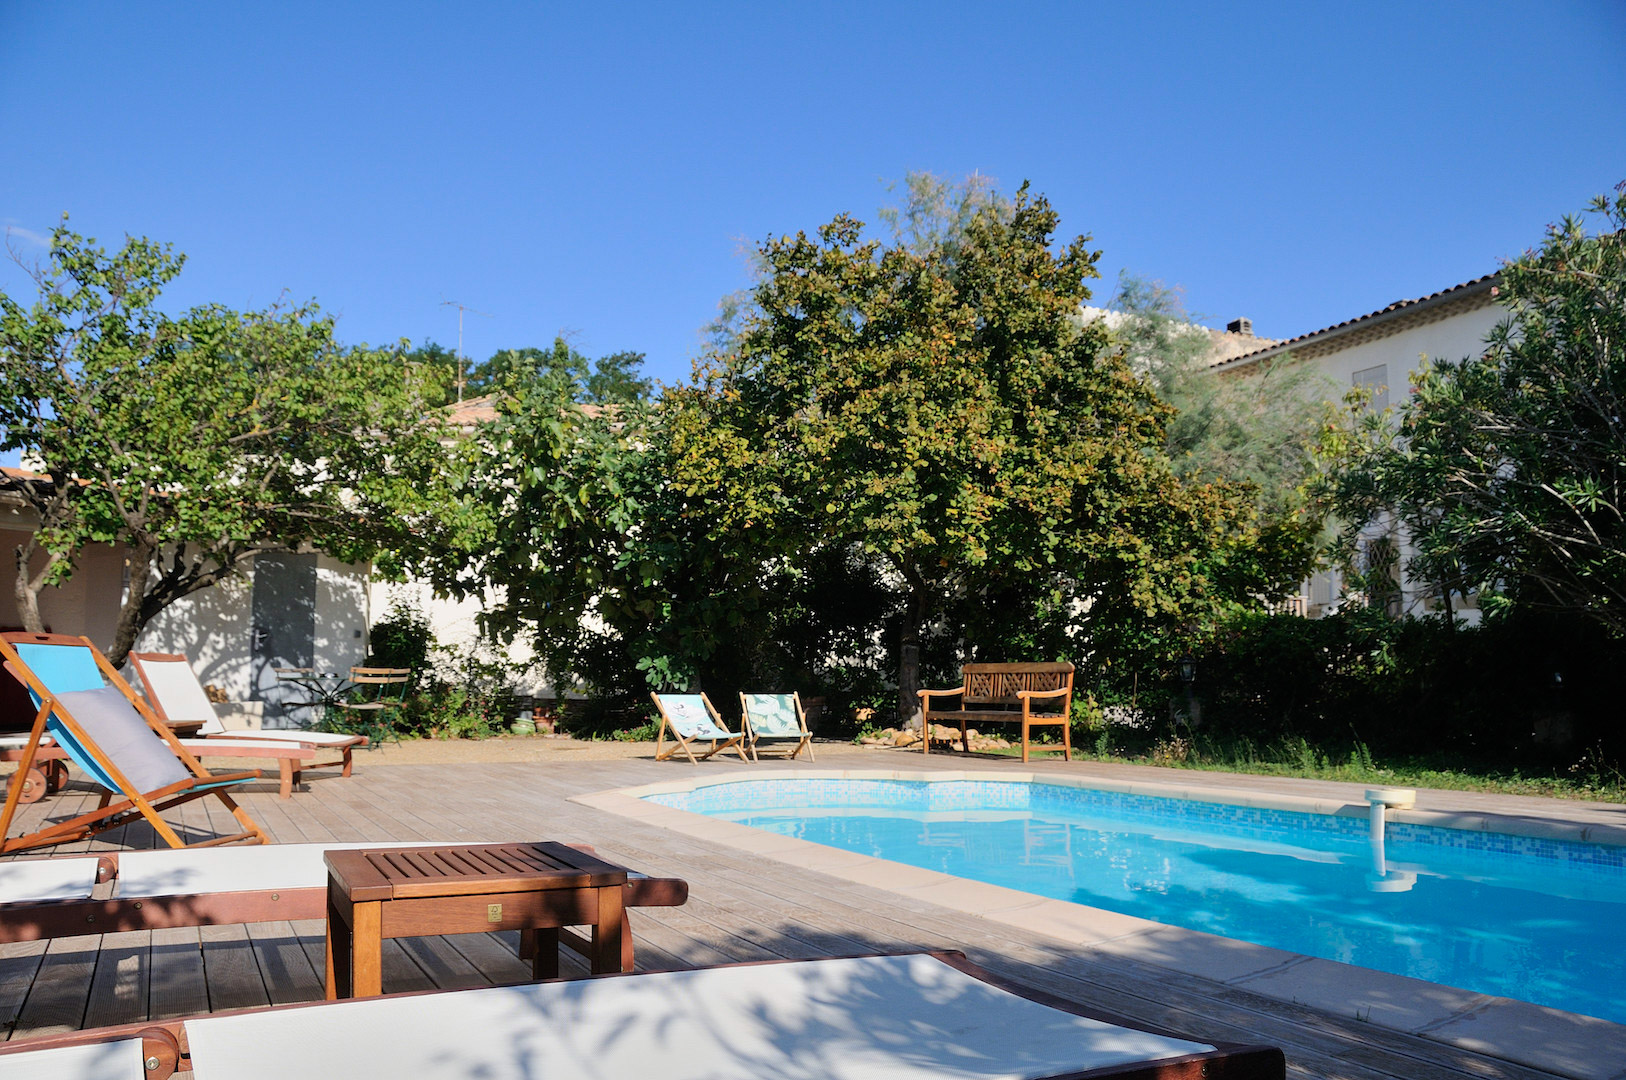 North of Avignon, Master house plus two separate dwellings, garden, pool & garages, good rental income